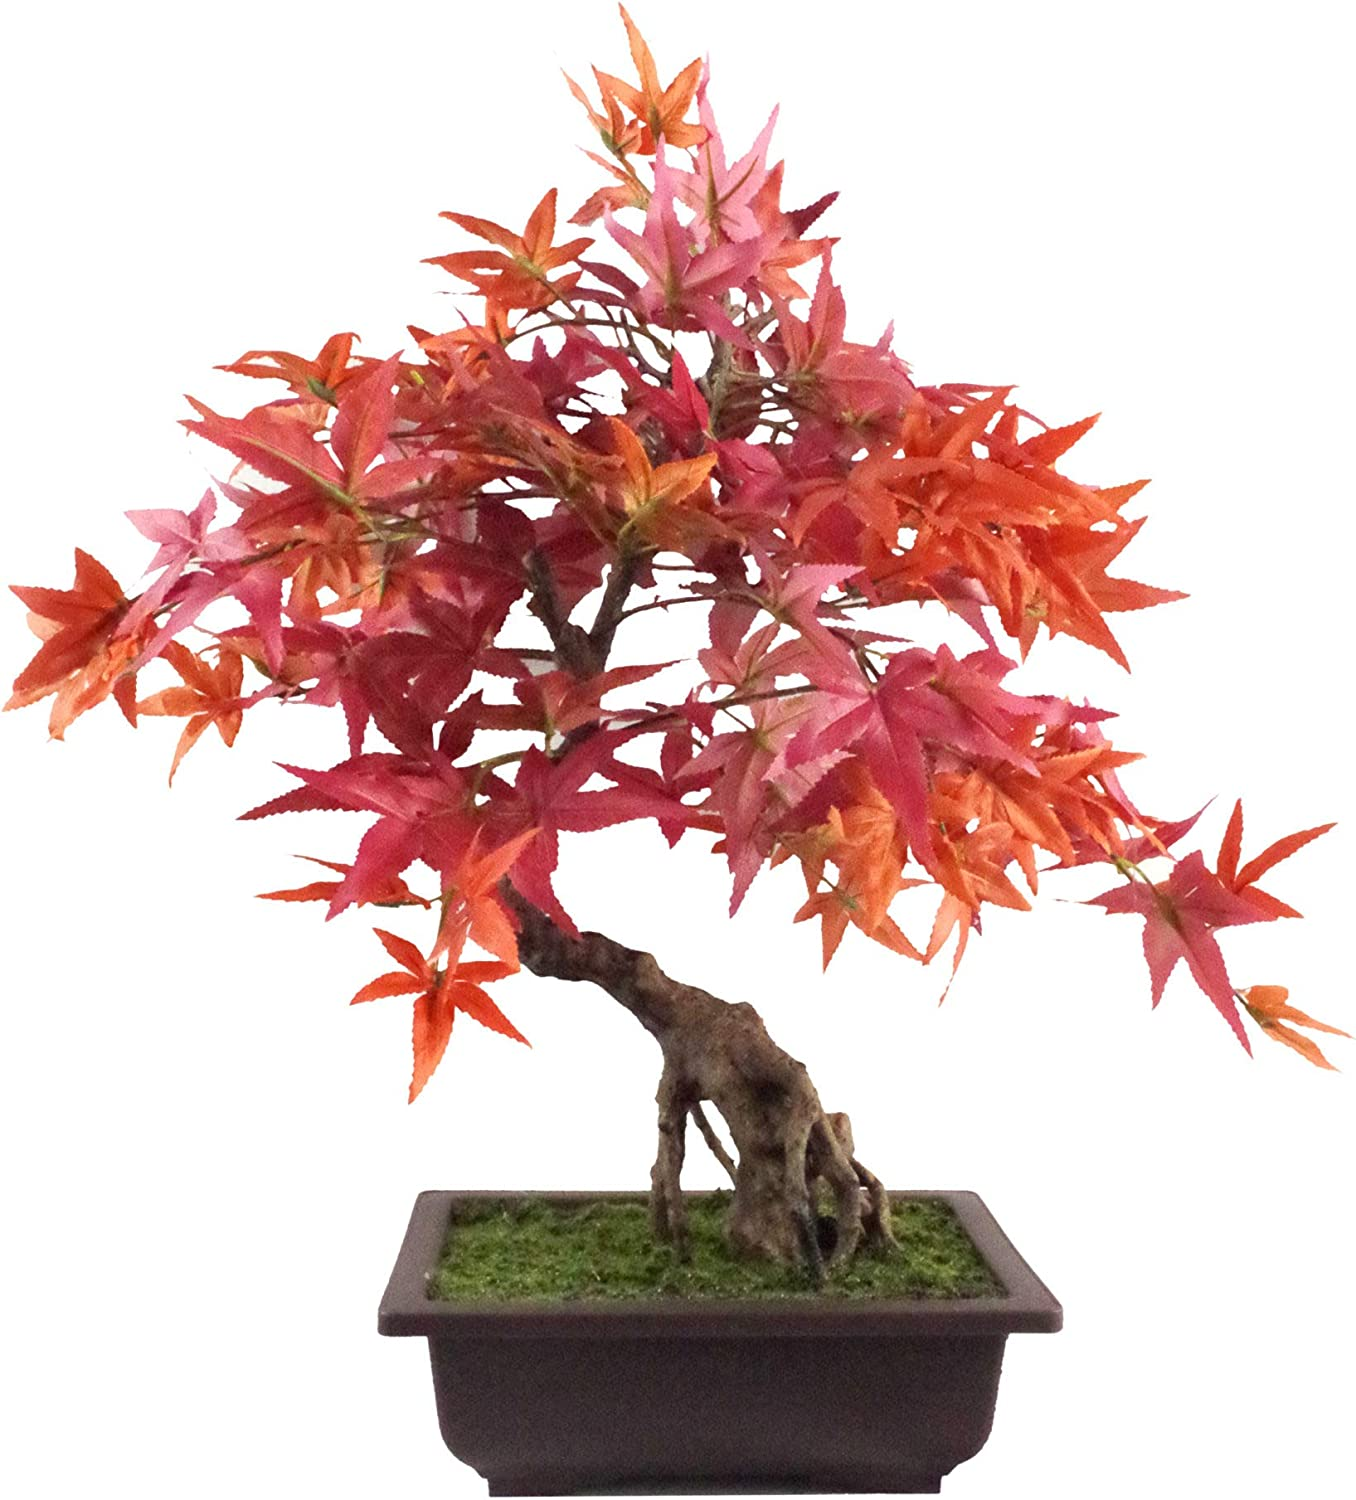 Amazon Com Leaf 50cm Artificial Red Maple Bonsai Tree 60cm Home Kitchen